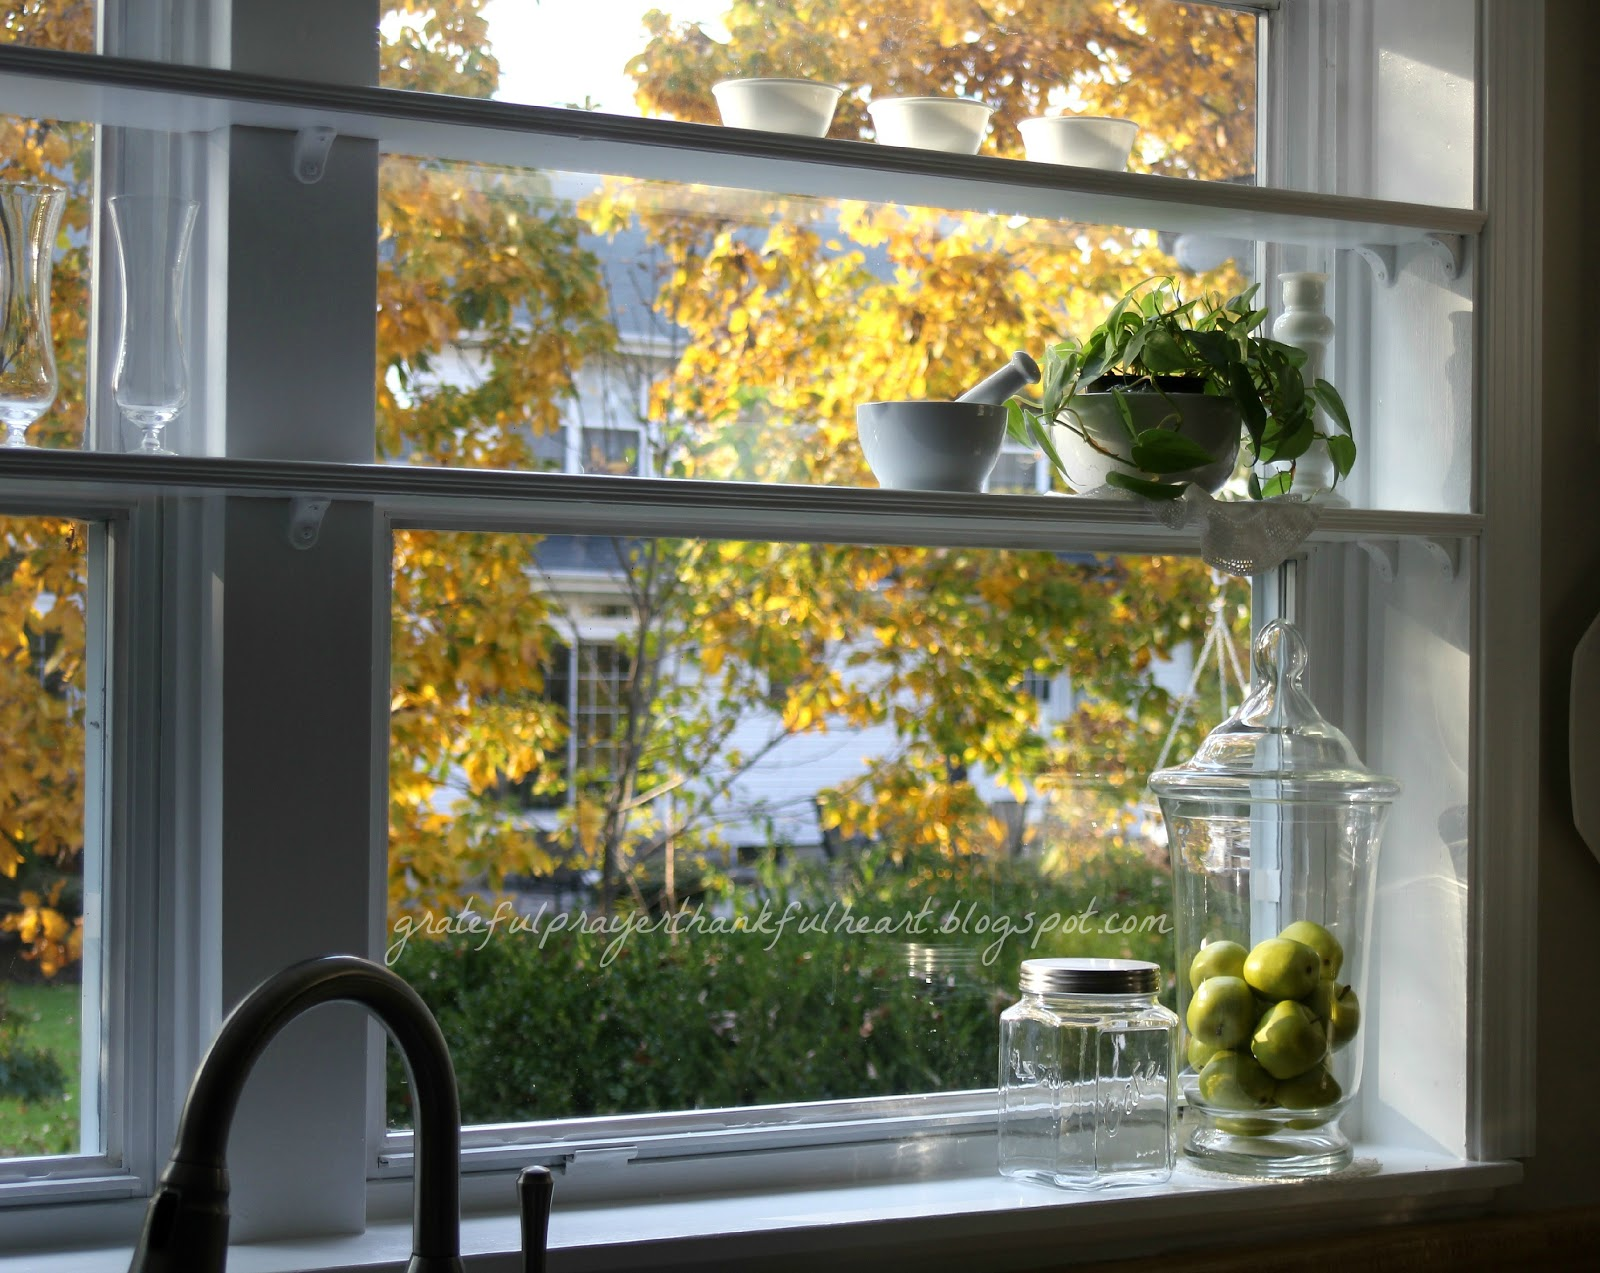 Kitchen Window Shelves Wm 5944jpg